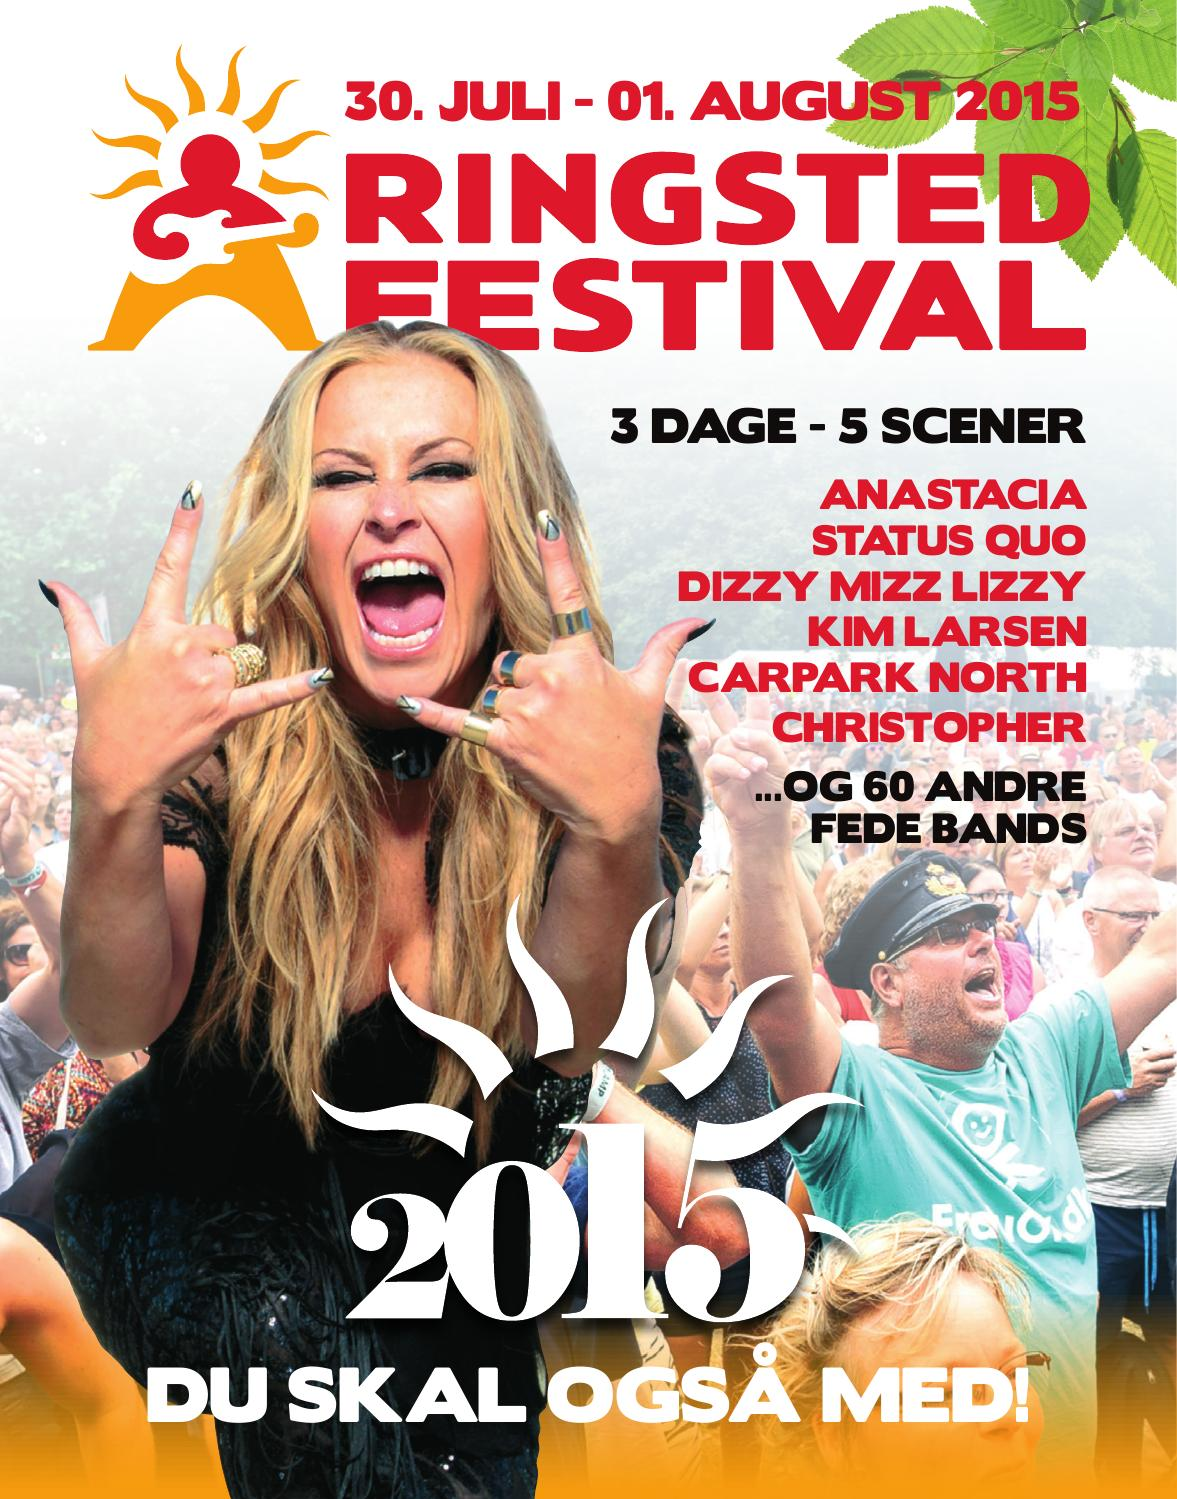 Ringsted Festival Magasin 2015 by Anders Sørensen - Issuu